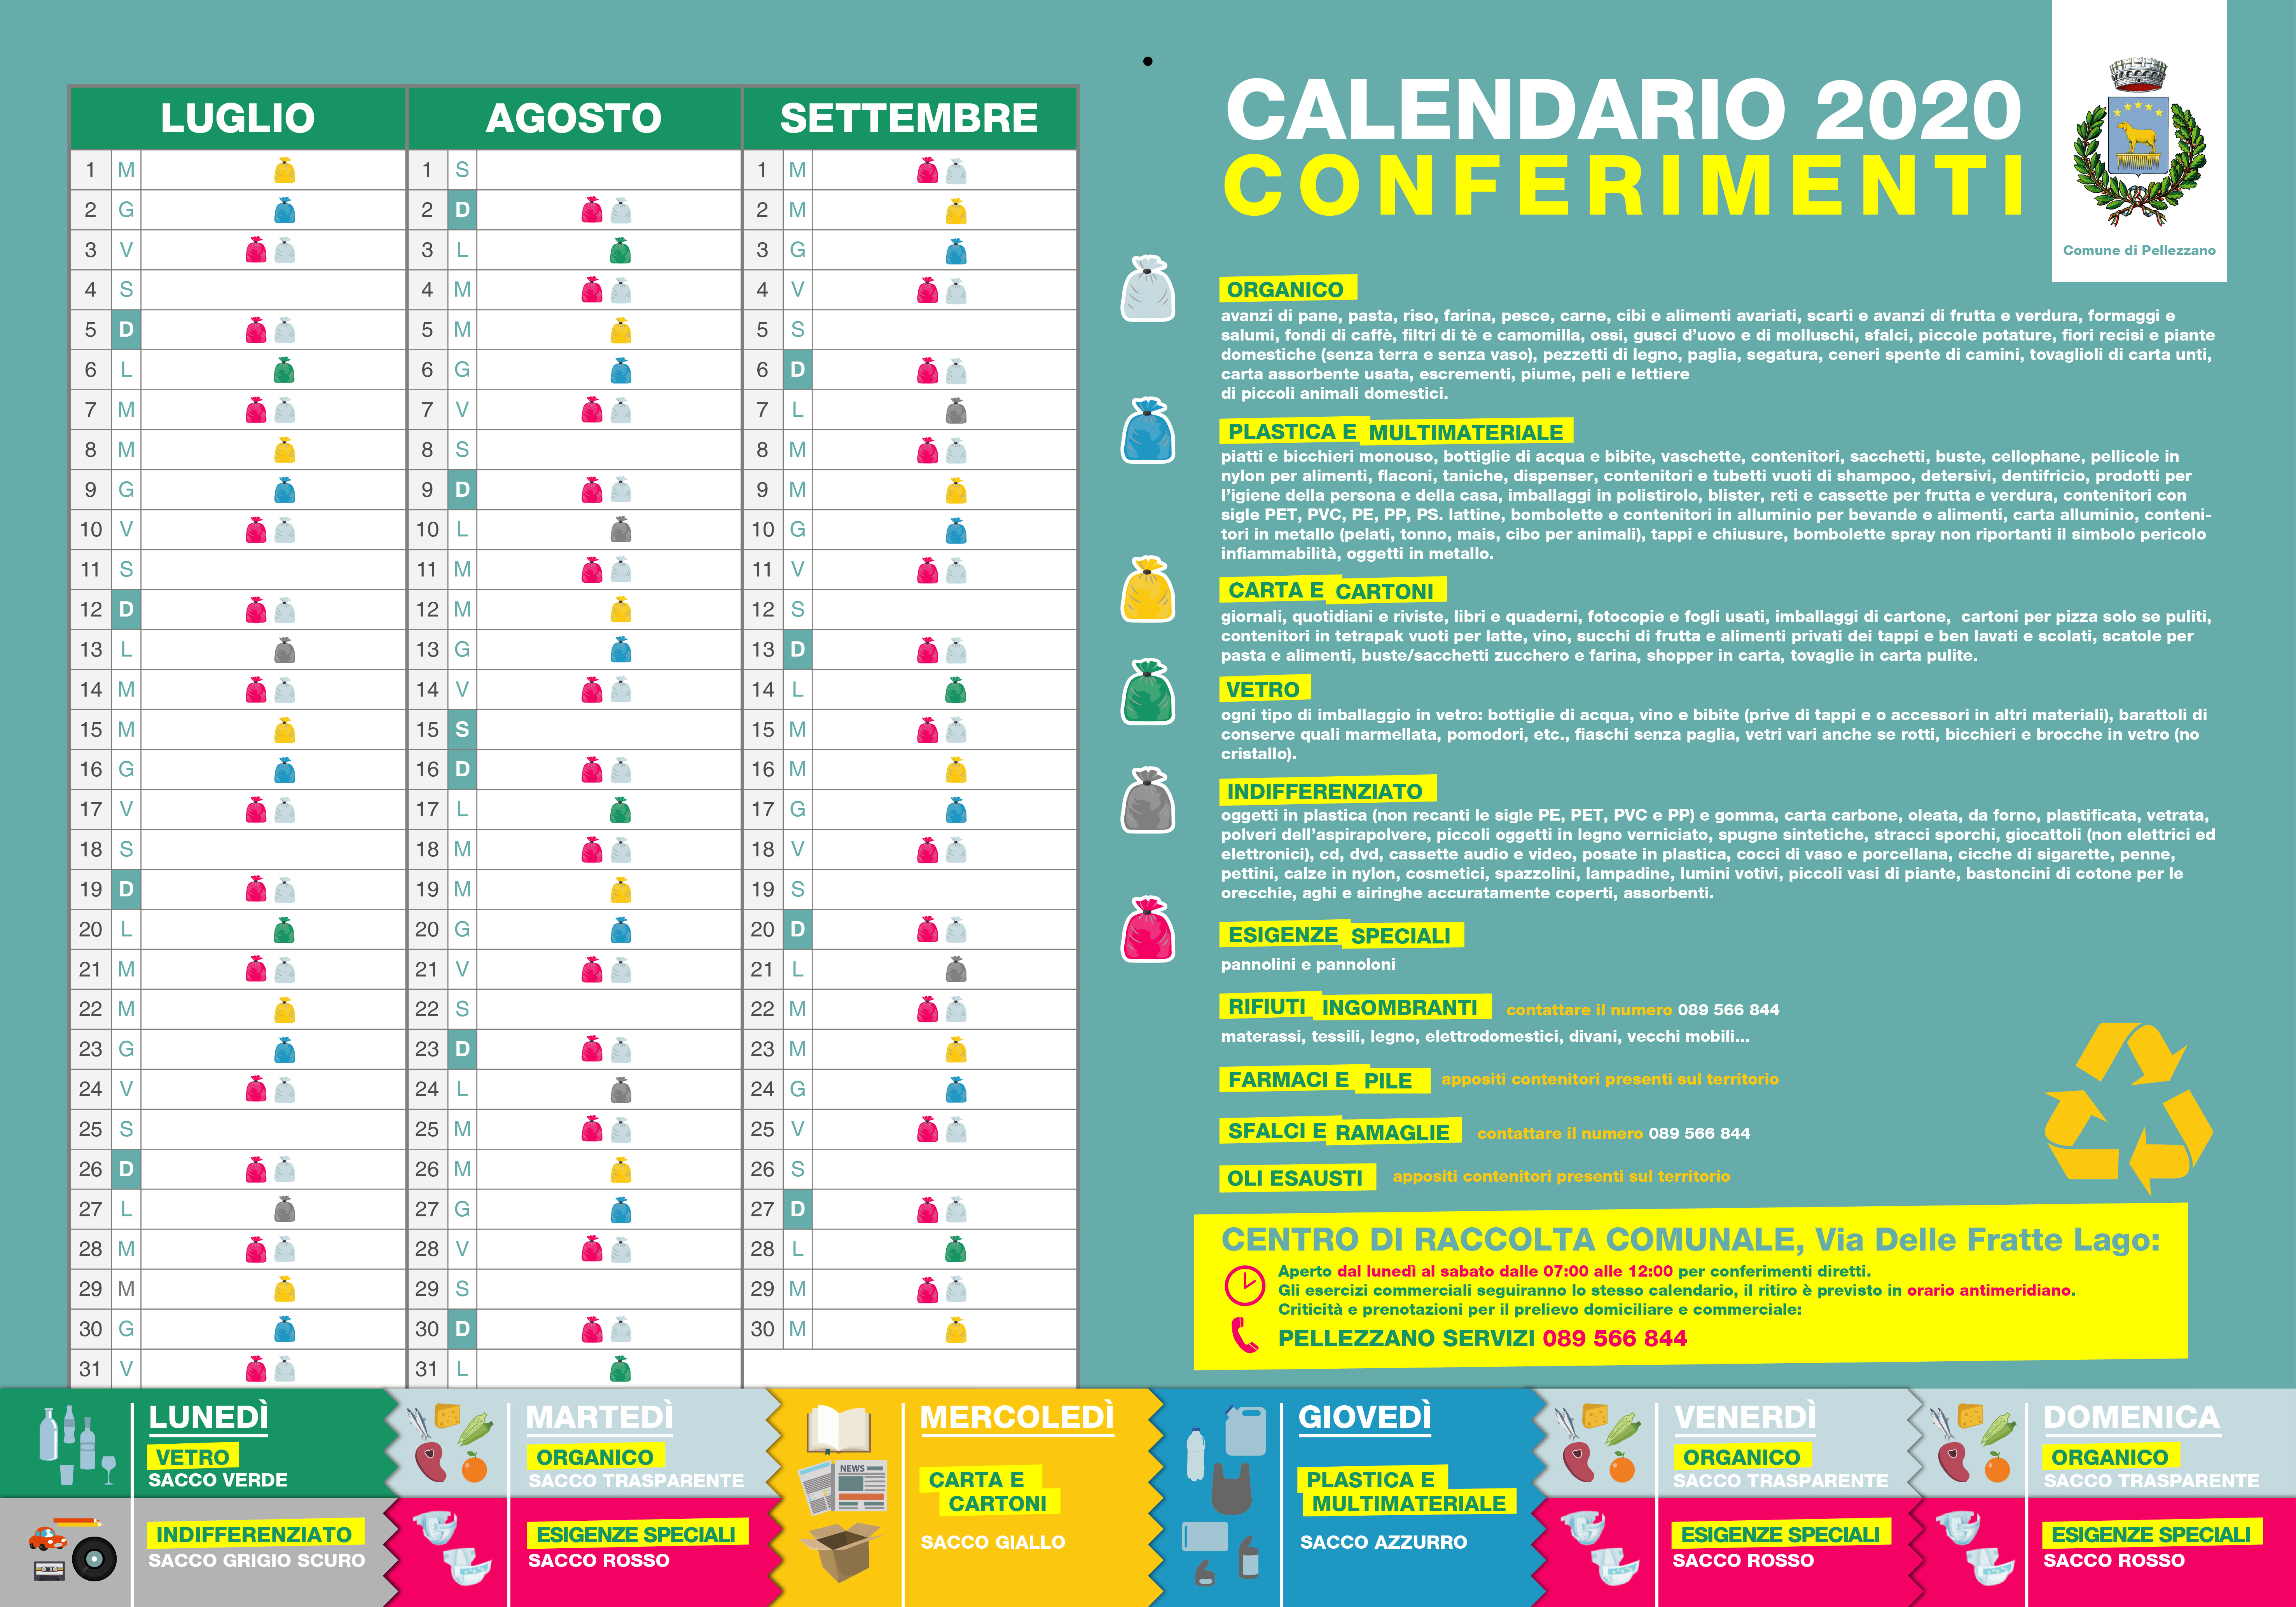 Calendario Raccolta Differenziata Acerra 2021 Disponibile il nuovo calendario per la raccolta differenziata